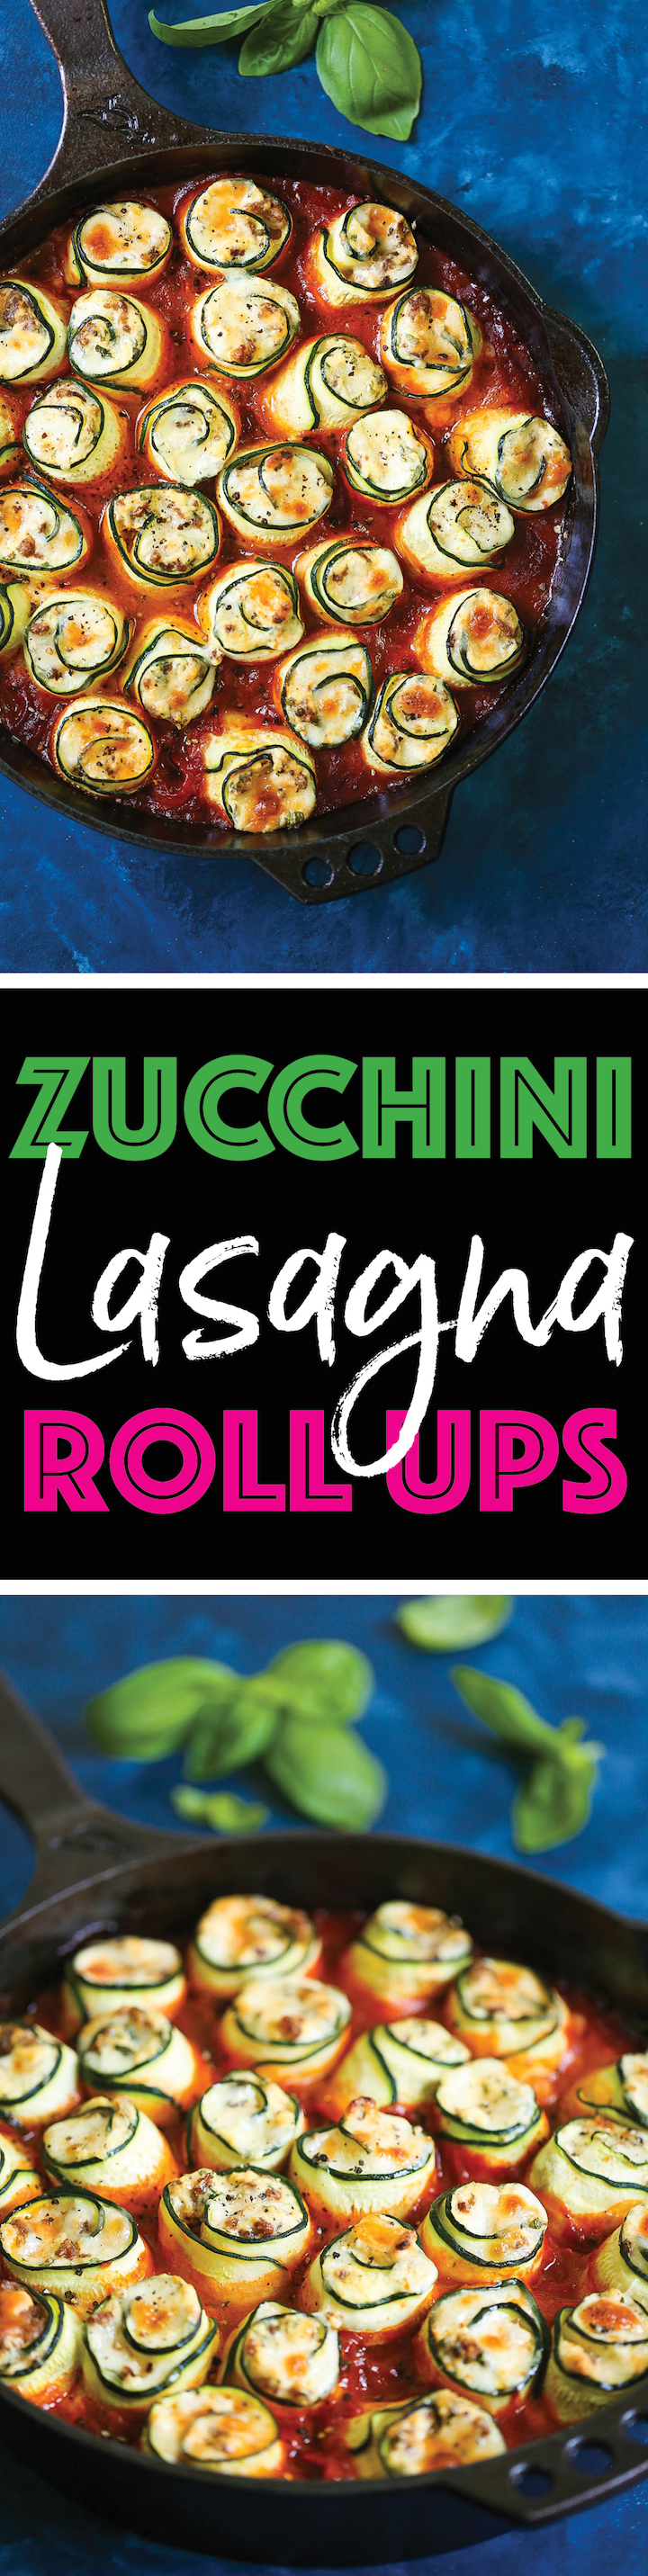 Zucchini Lasagna Roll Ups - Swap out the lasagna noodles for zucchini - it's LOW CARB and you won't miss the noodles at all! I promise! You can even make this ahead of time - perfect for feeding a crowd or for packing leftovers for work the next day!